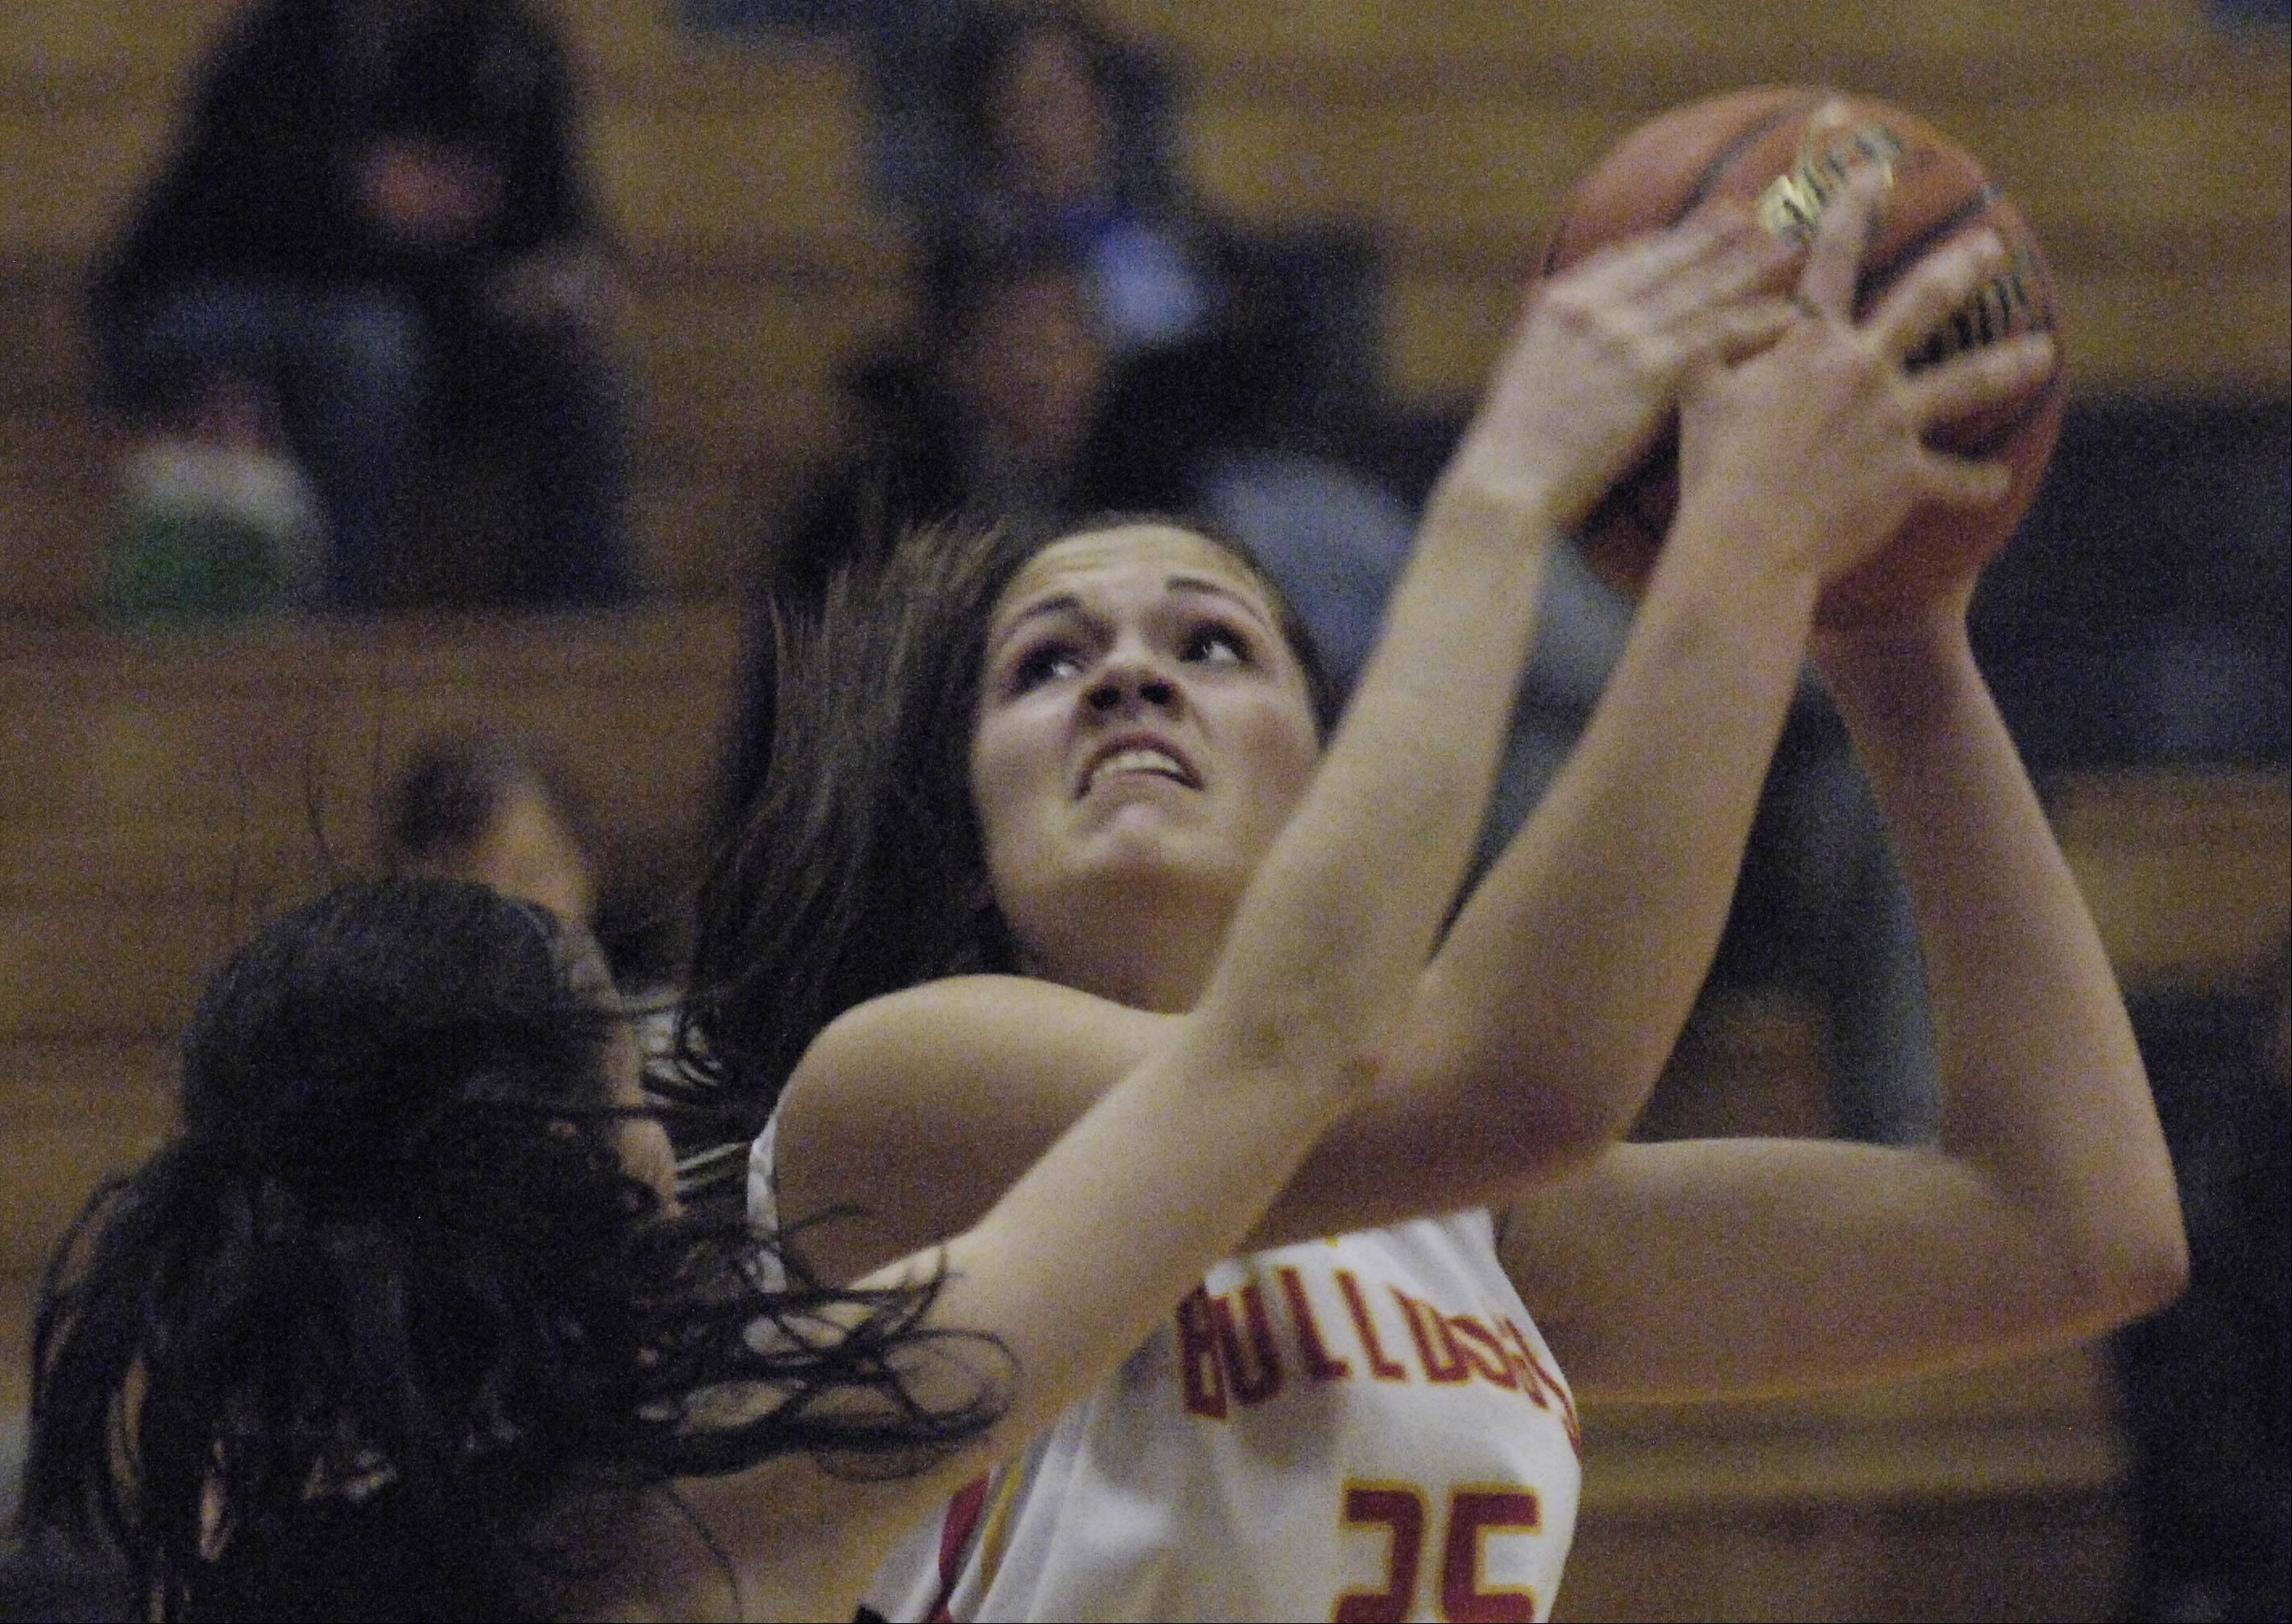 Batavia knocks out Minooka in 3rd quarter